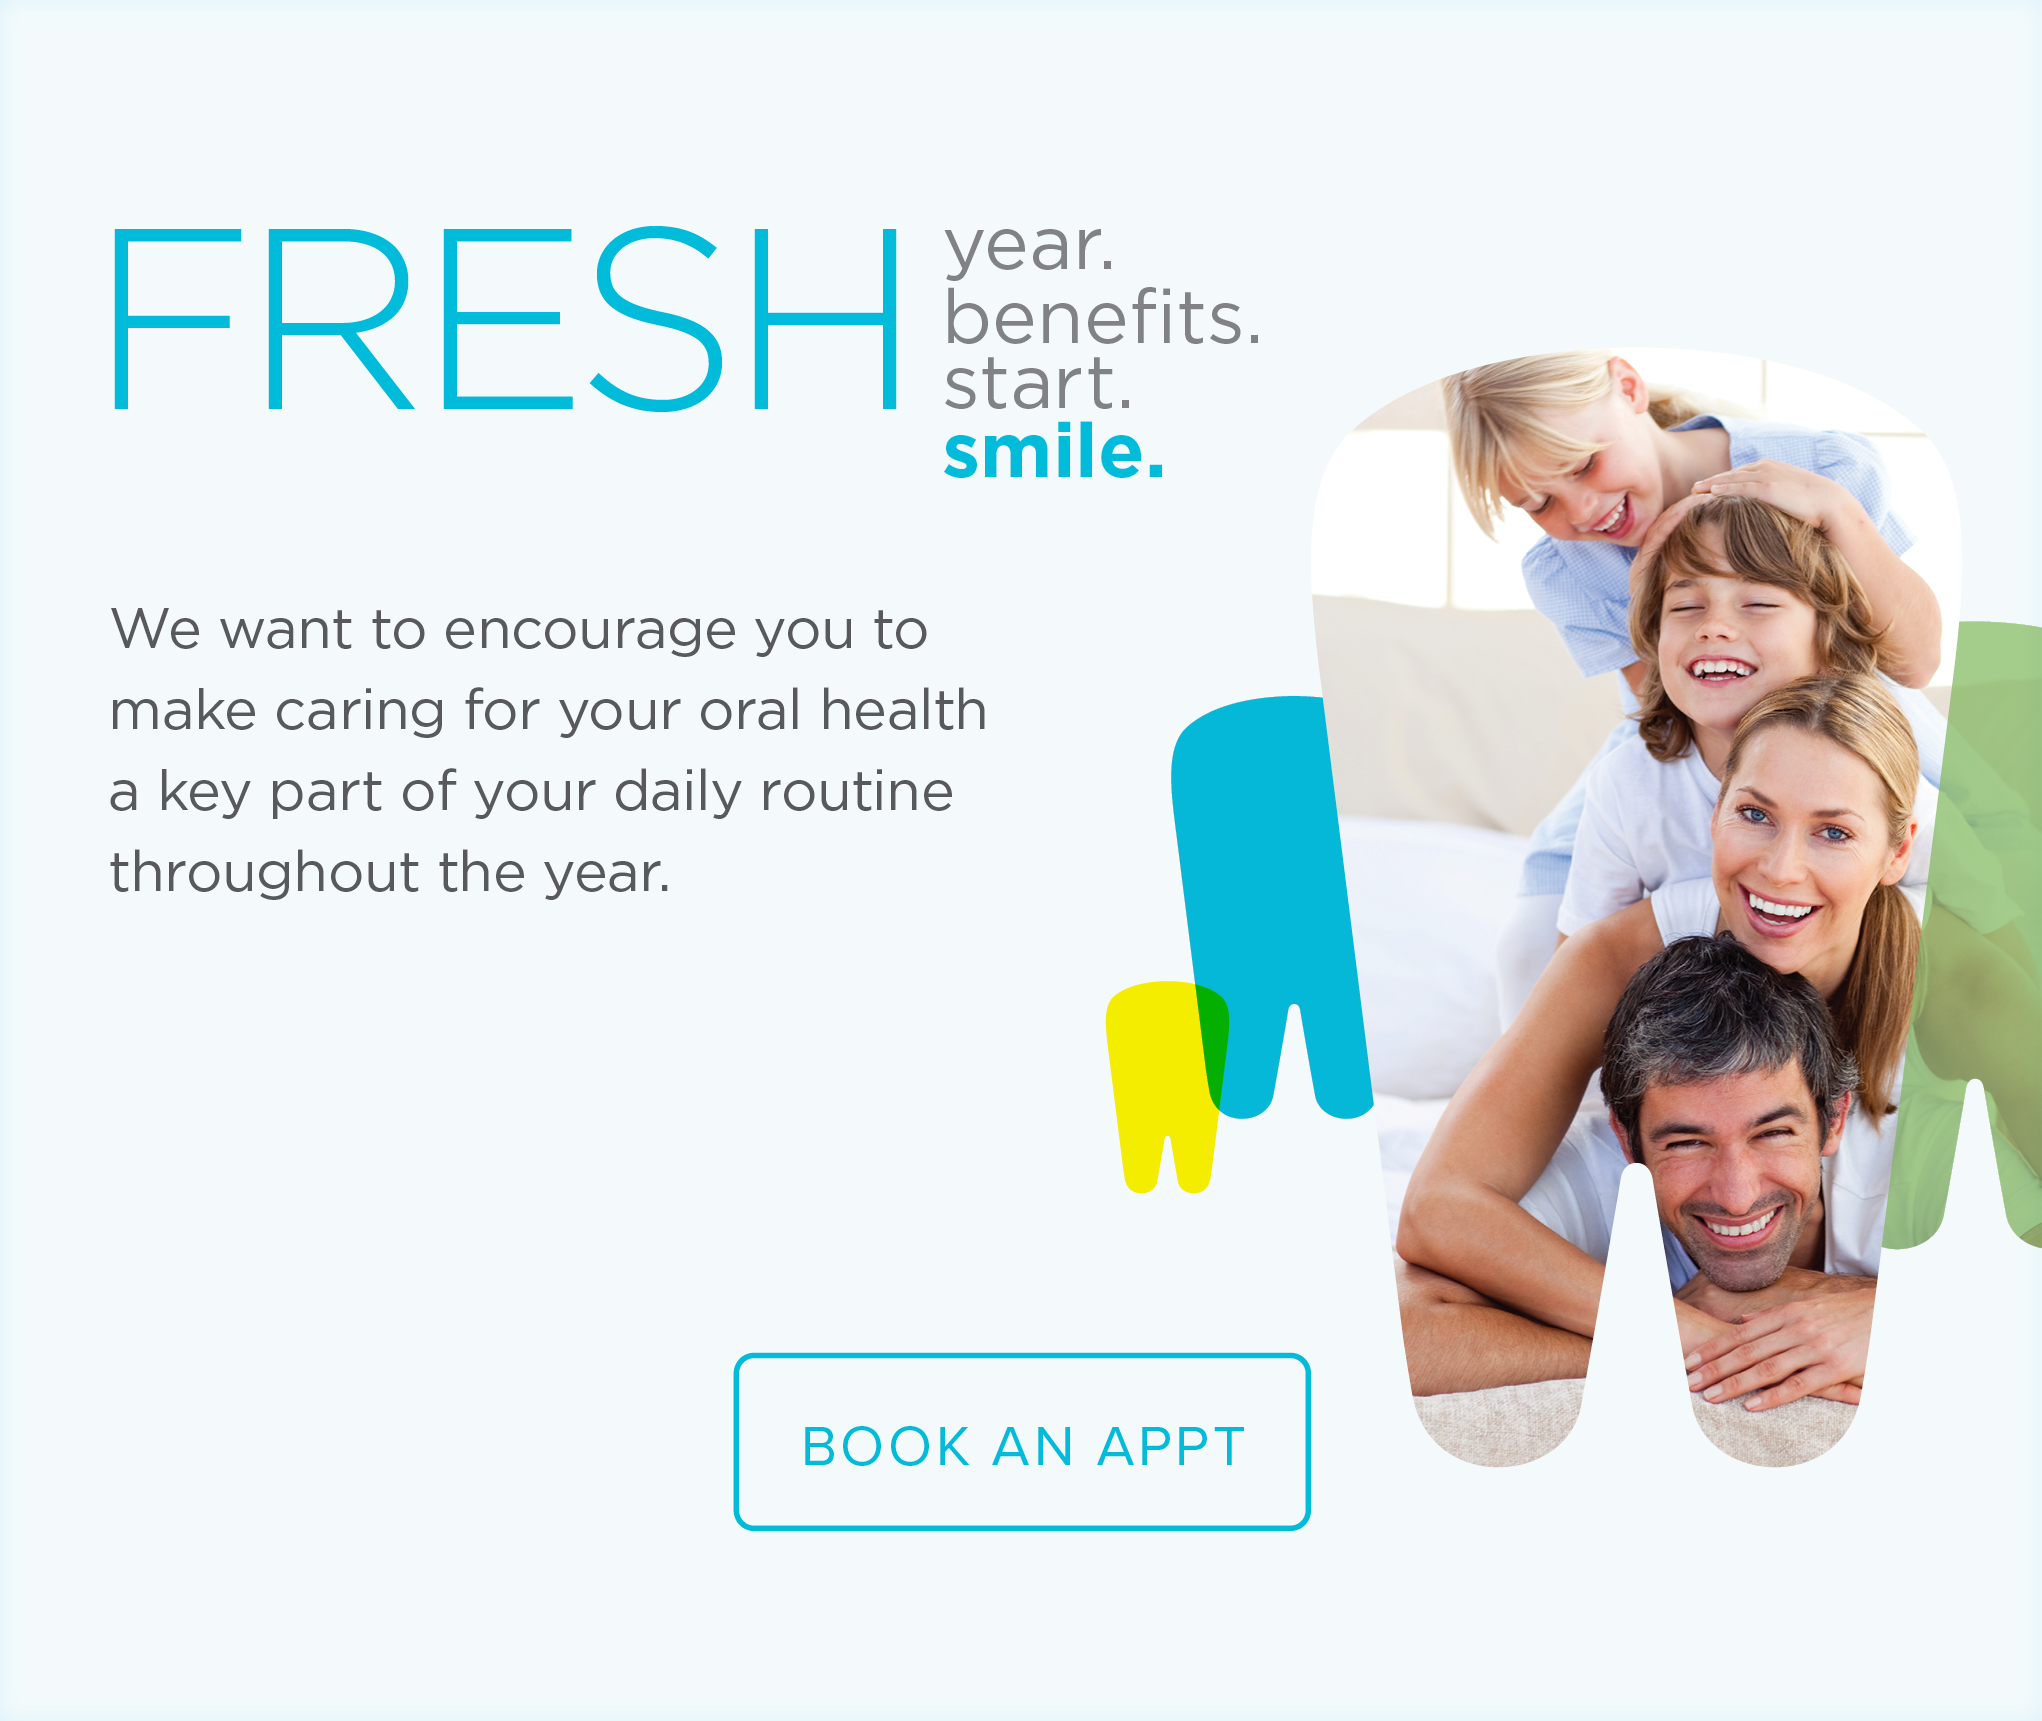 Mansfield Smiles and Orthodontics - Make the Most of Your Benefits